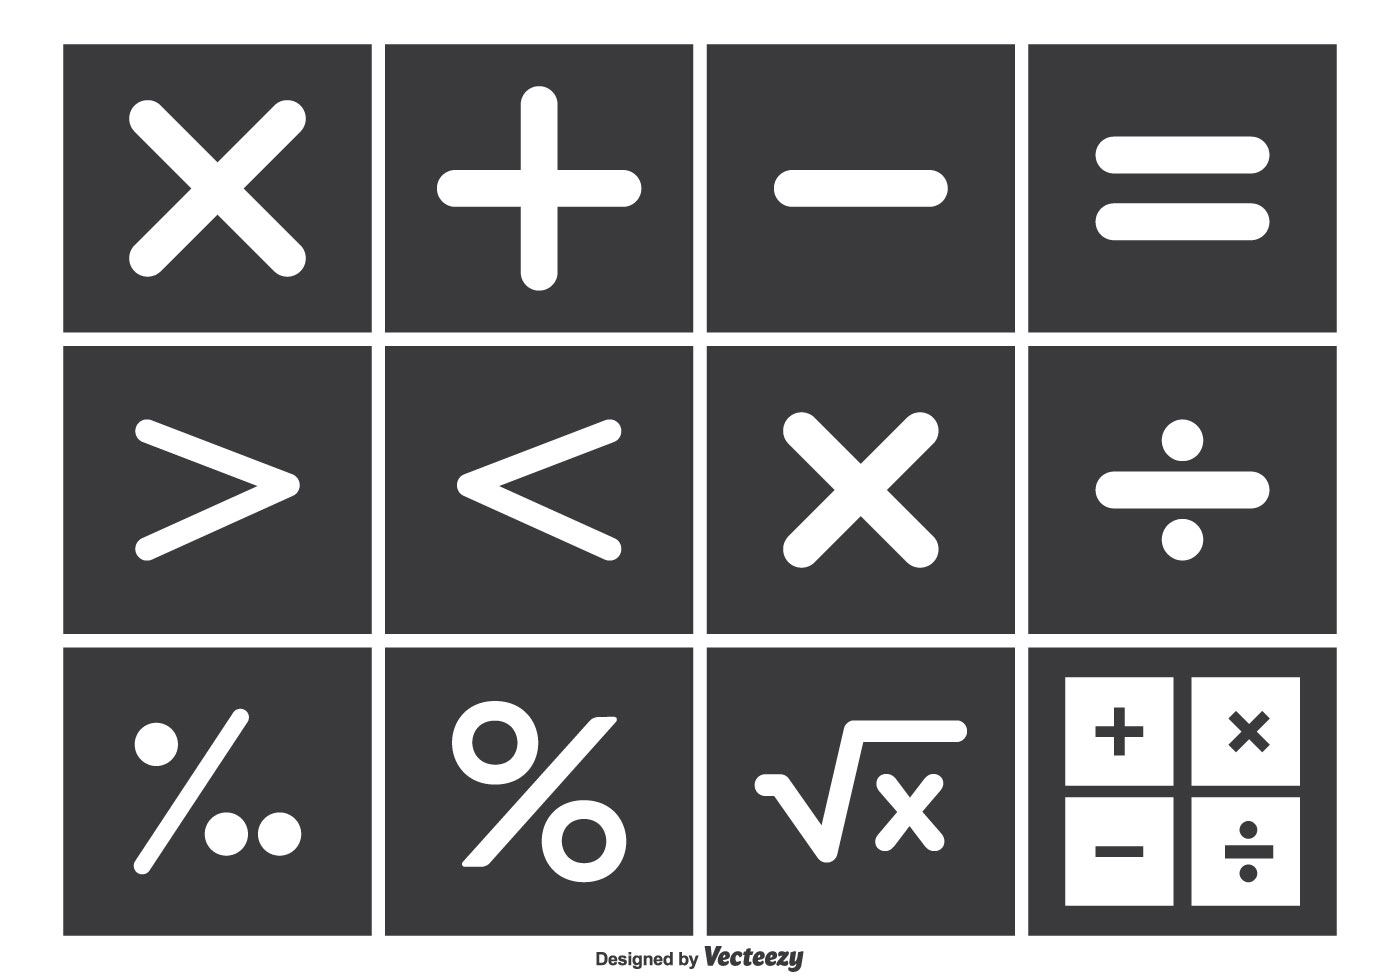 Math vector symbol set download free vector art stock graphics math vector symbol set download free vector art stock graphics images buycottarizona Image collections